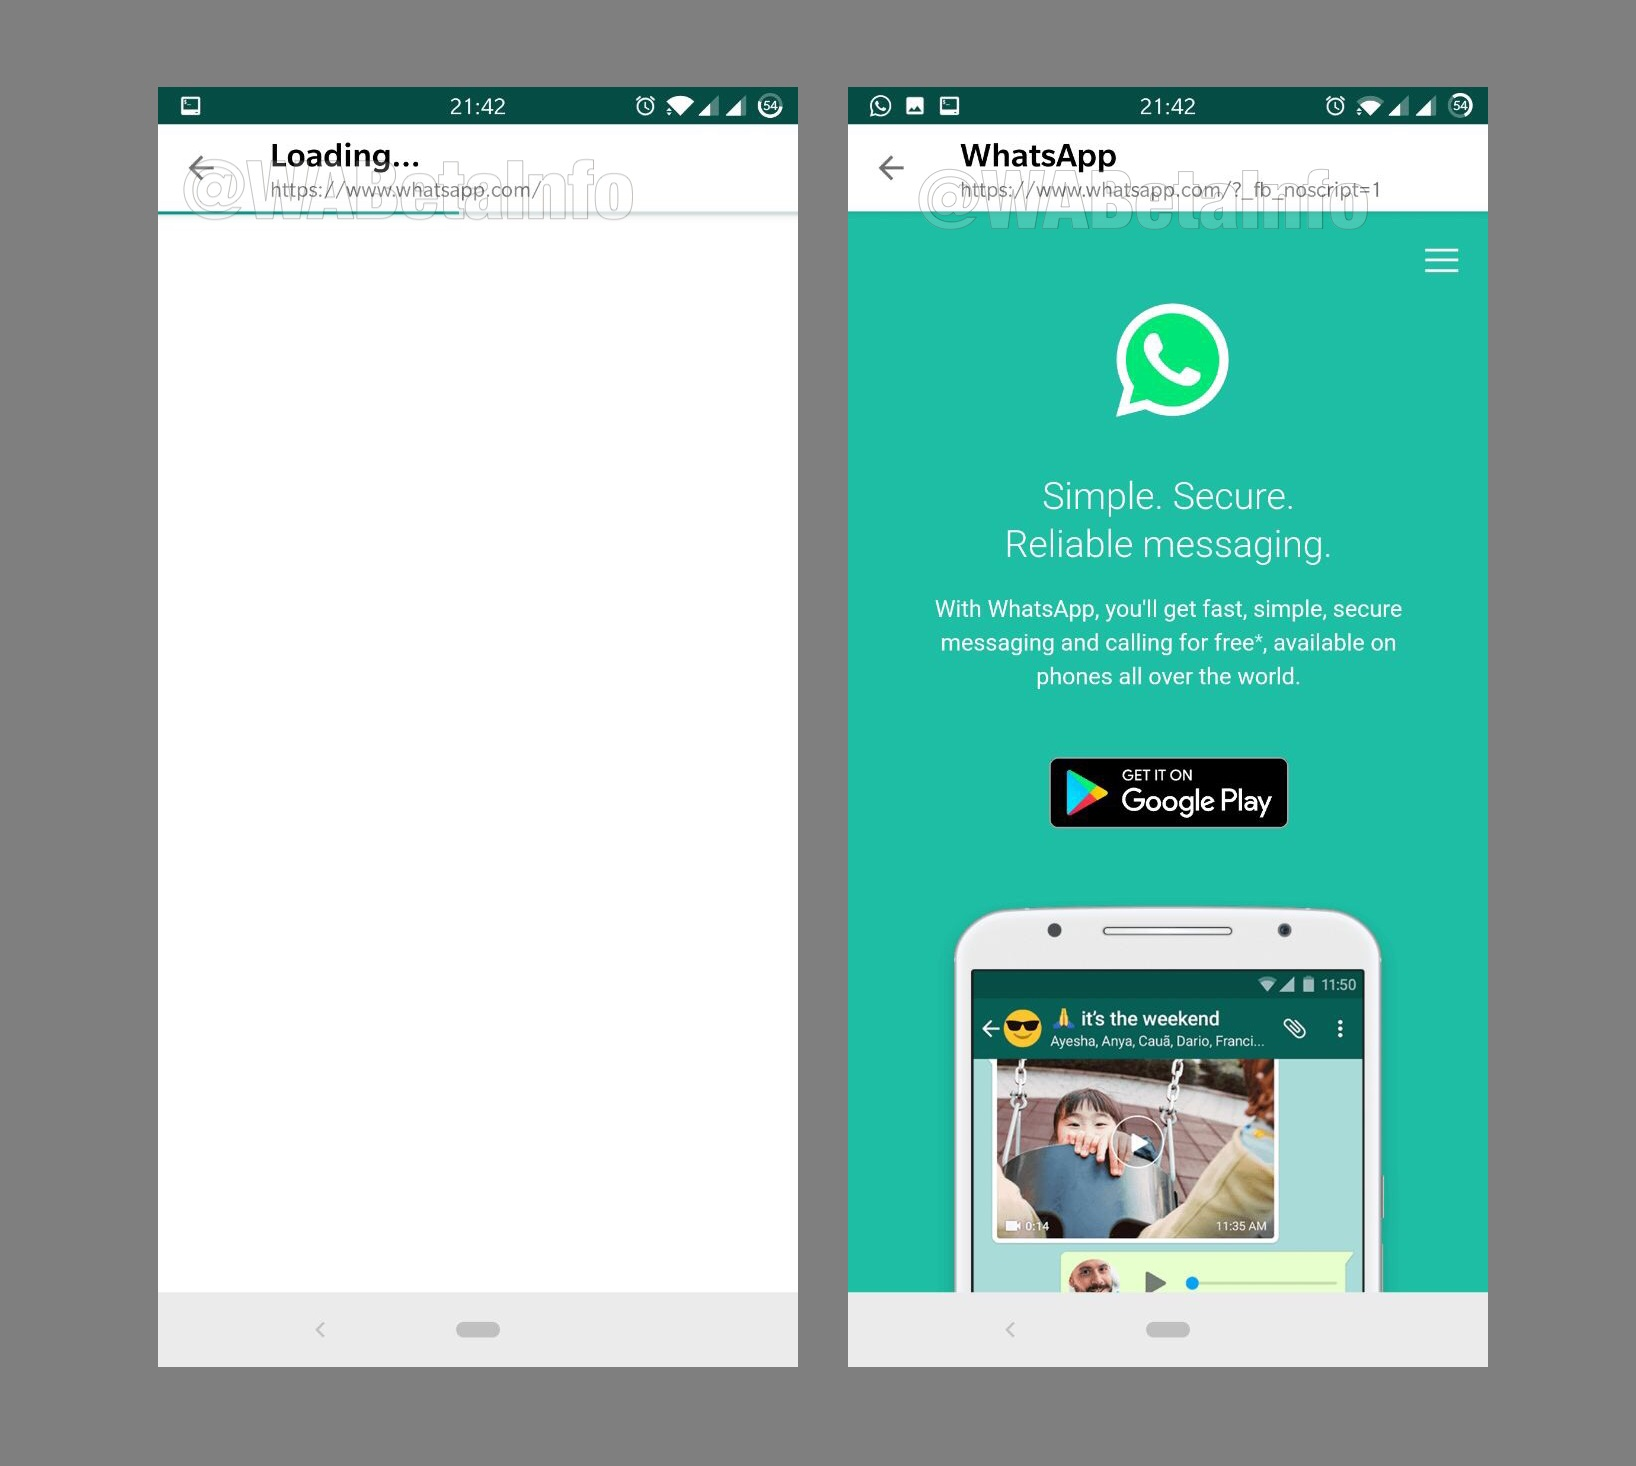 WhatsApp Might Be Getting an In App Browser / Digital